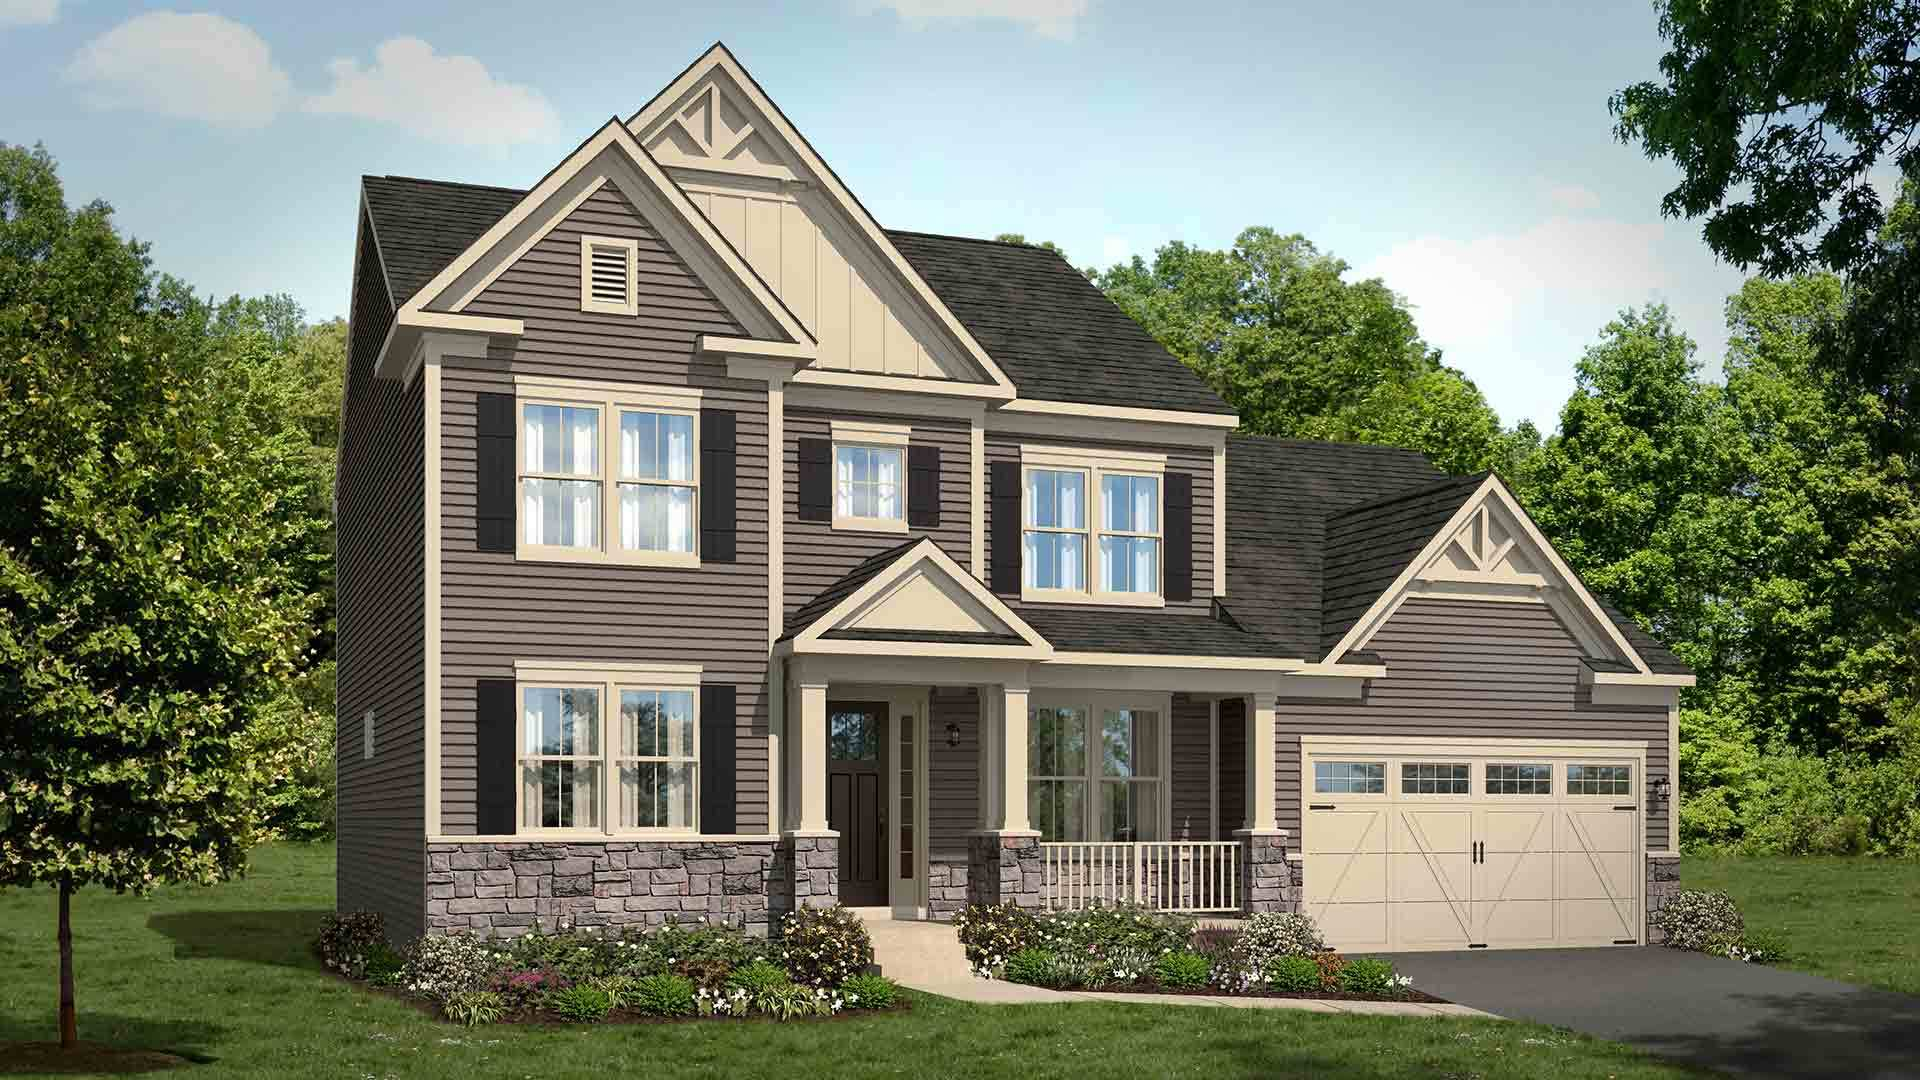 Single Family for Active at Old Trail - Travis 7675 Birchwood Hill Road Crozet, Virginia 22932 United States